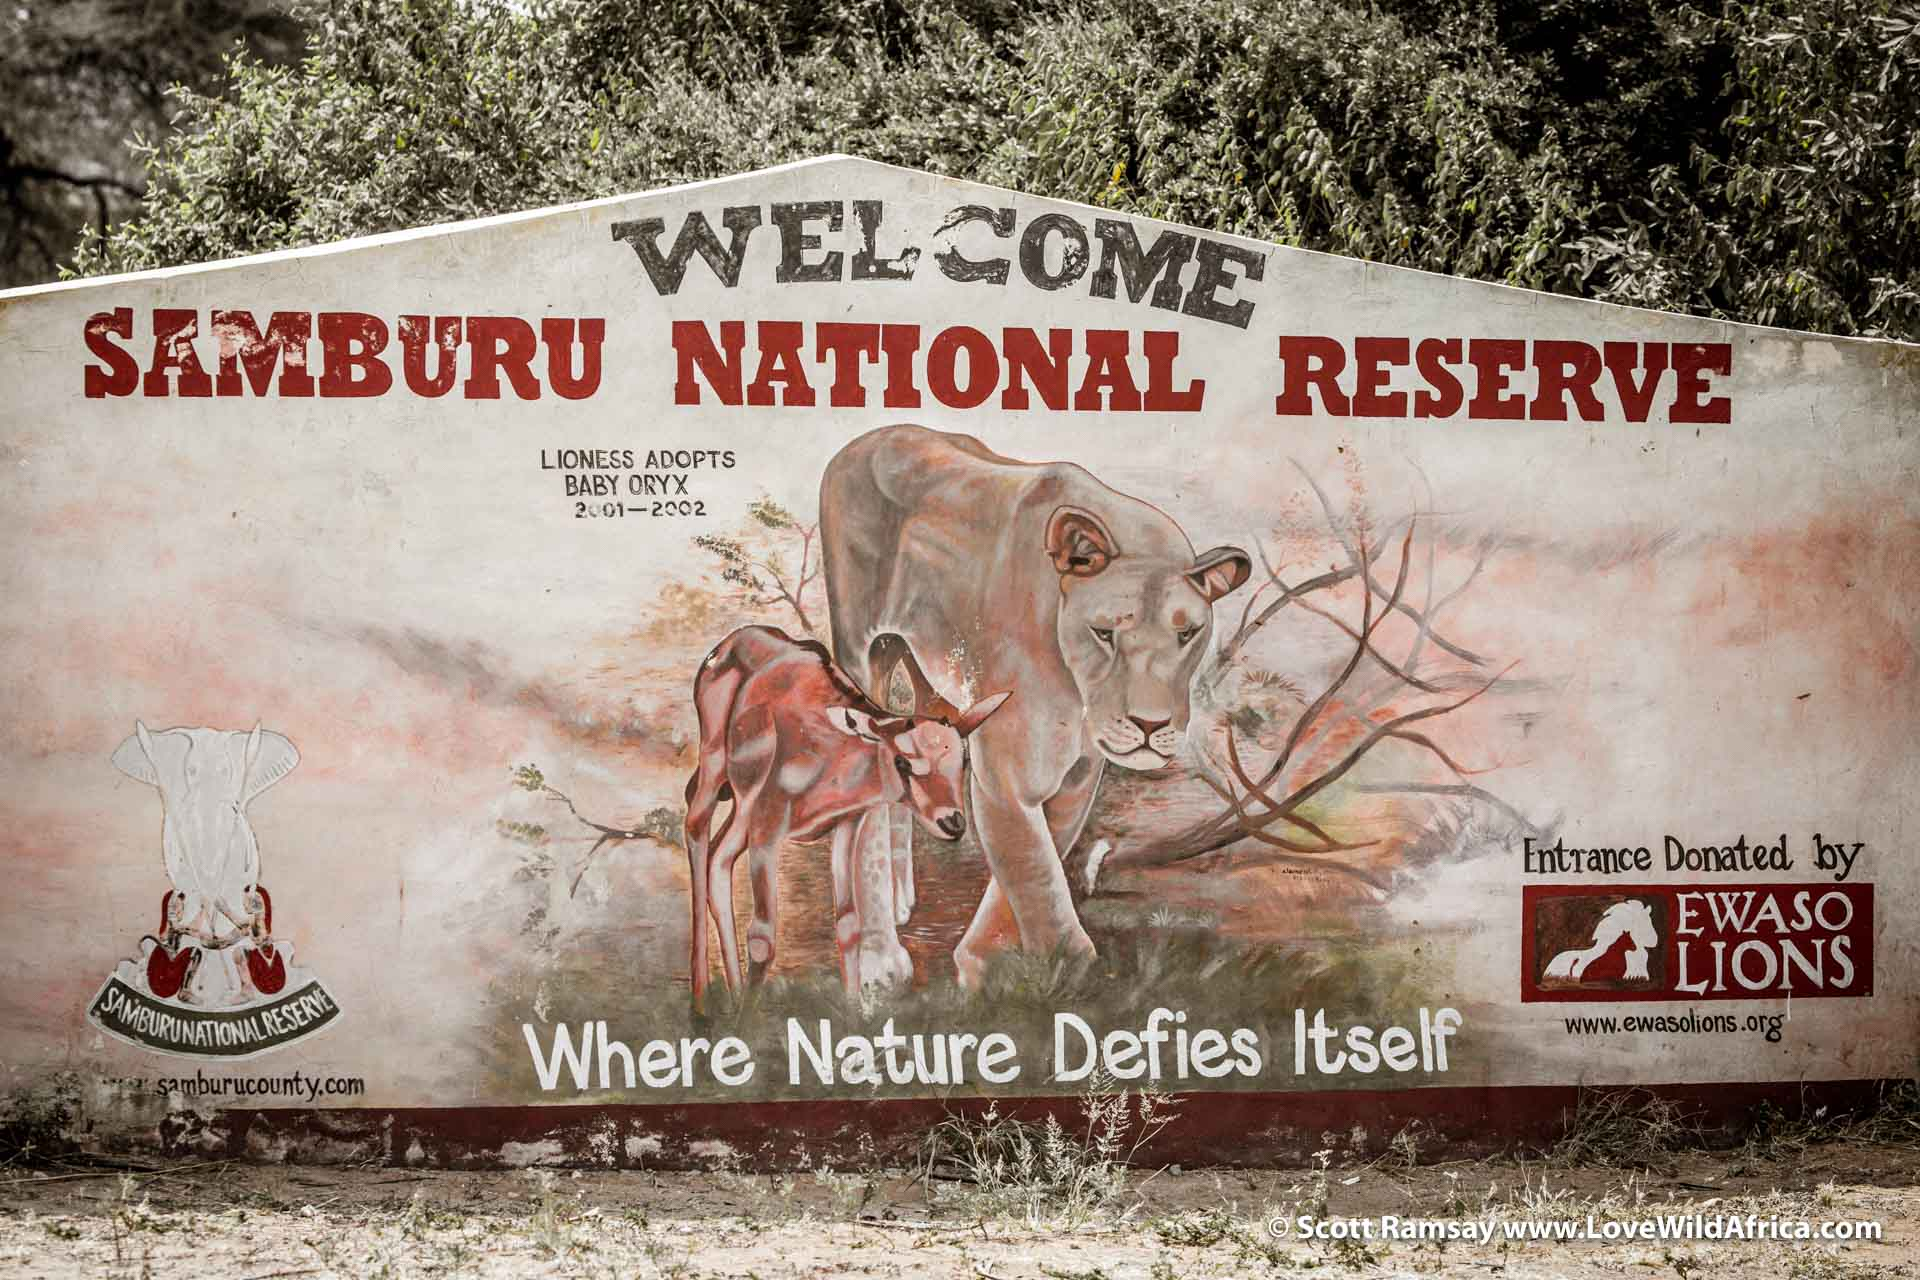 The welcome sign at Samburu National Reserve, with a painting of Kamunyak, a lioness who adopted several oryx calves, and protected them for a while.